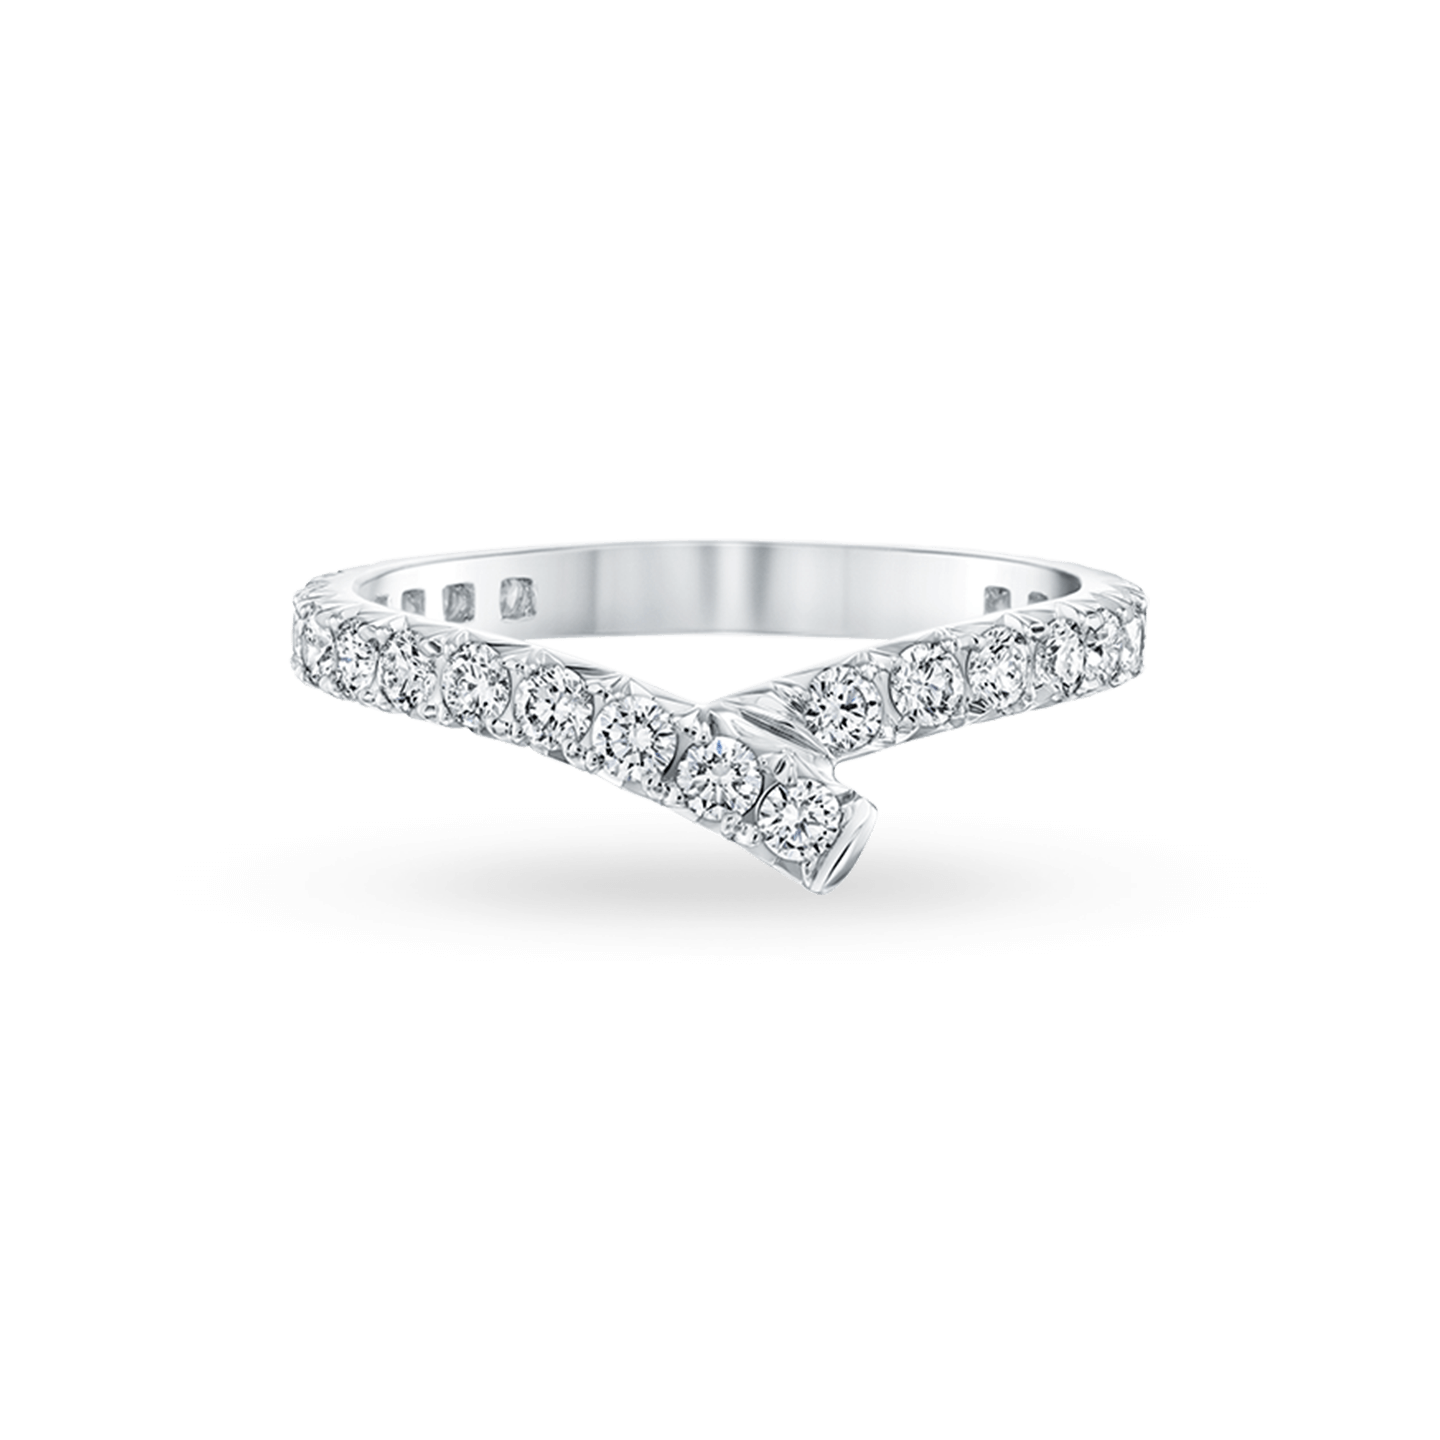 Ribbon Diamond Wedding Band, Product Image 1